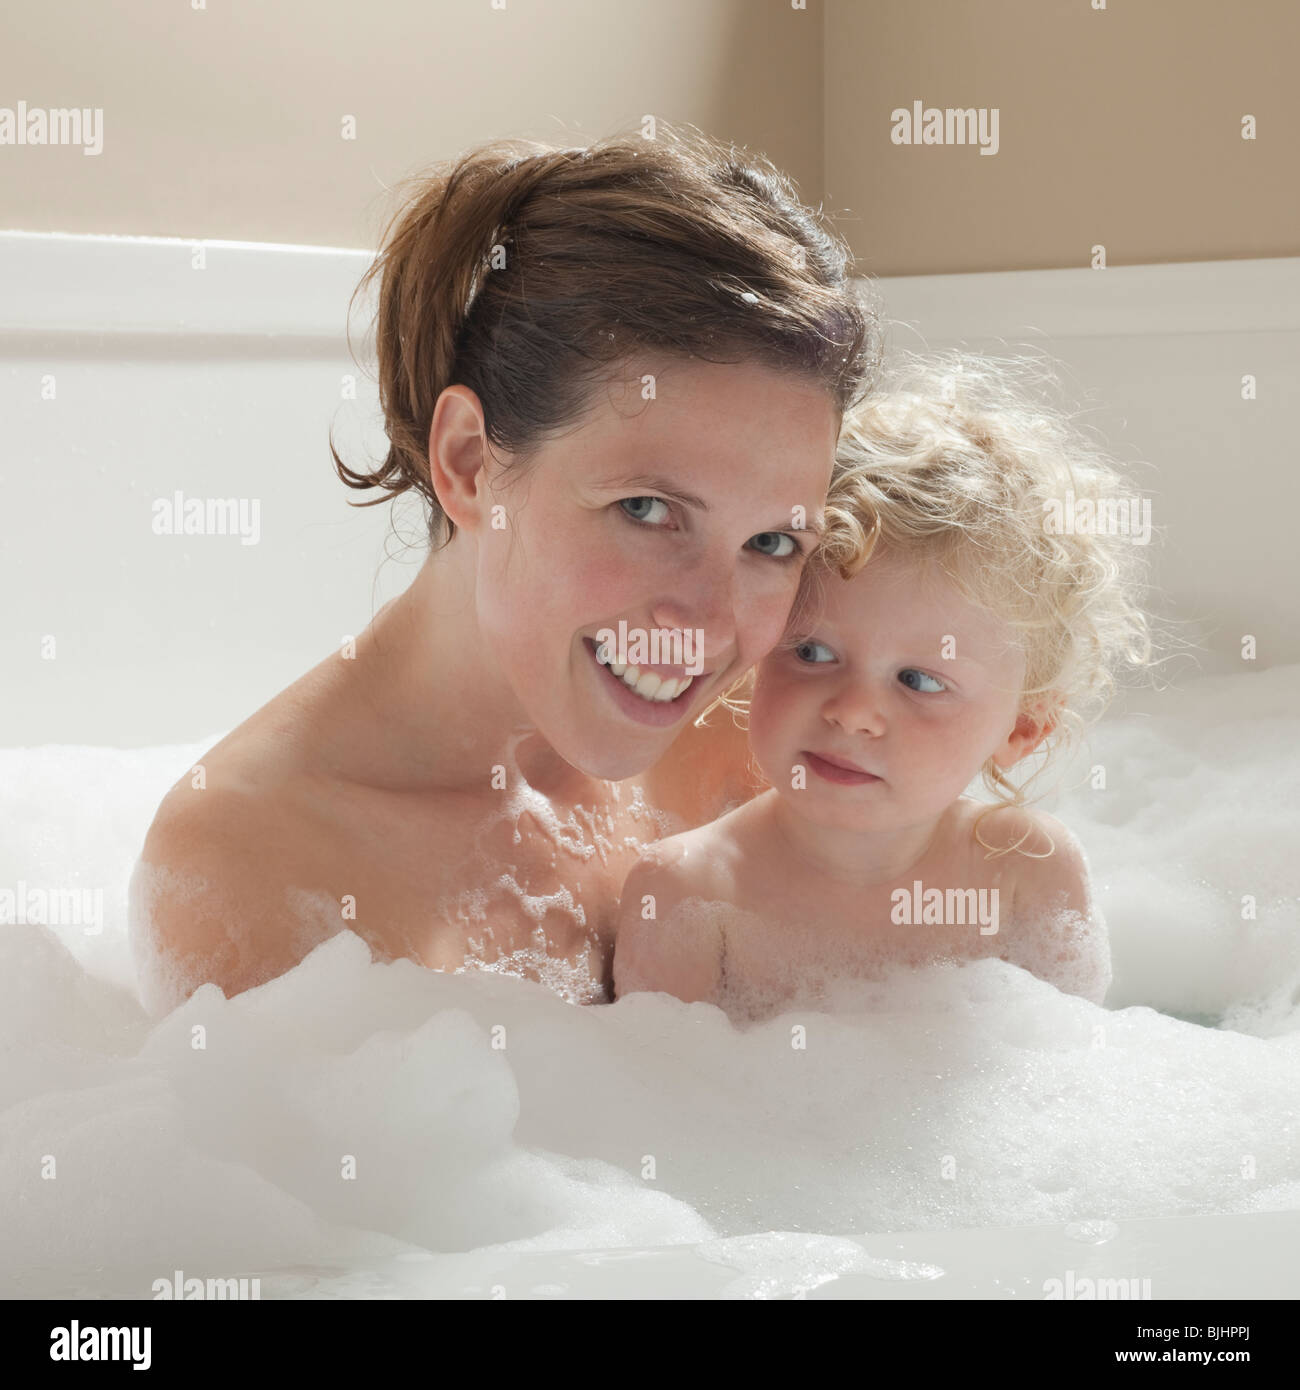 Mother and child having bubble bath Stock Photo: 28665242 - Alamy